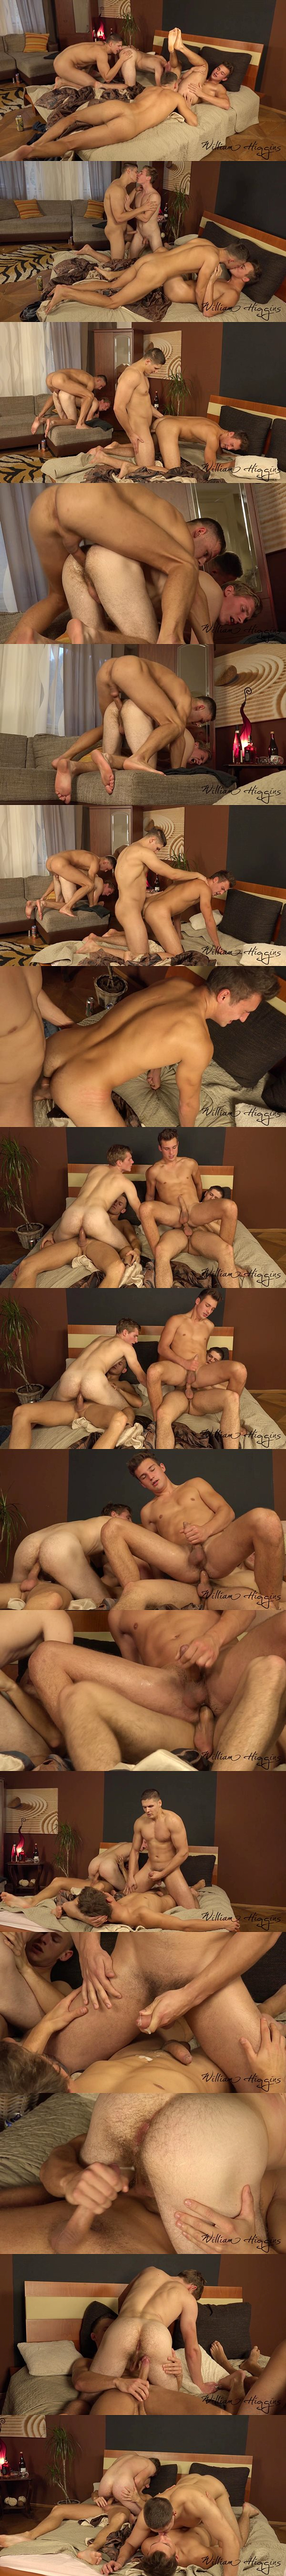 Martin Hovor and Tomas Fuk bareback Dan Holan and Martin Polnak in Wank Party 89 Part 2 Raw at Williamhiggins 02